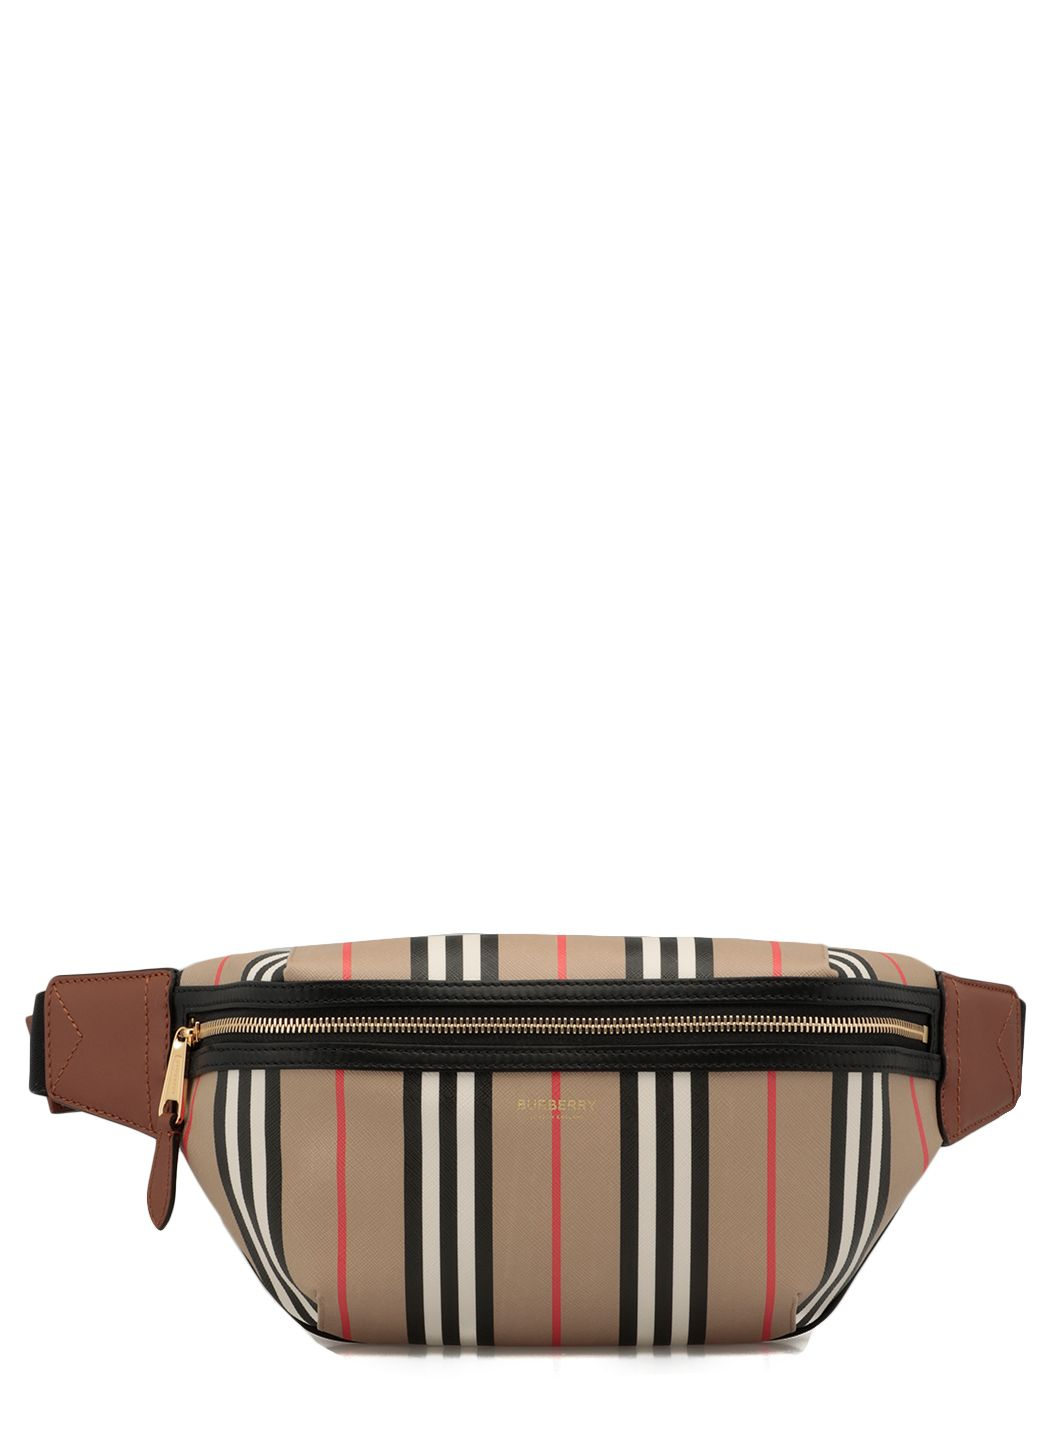 E-canvas Sonny belt bag with iconic striped pattern